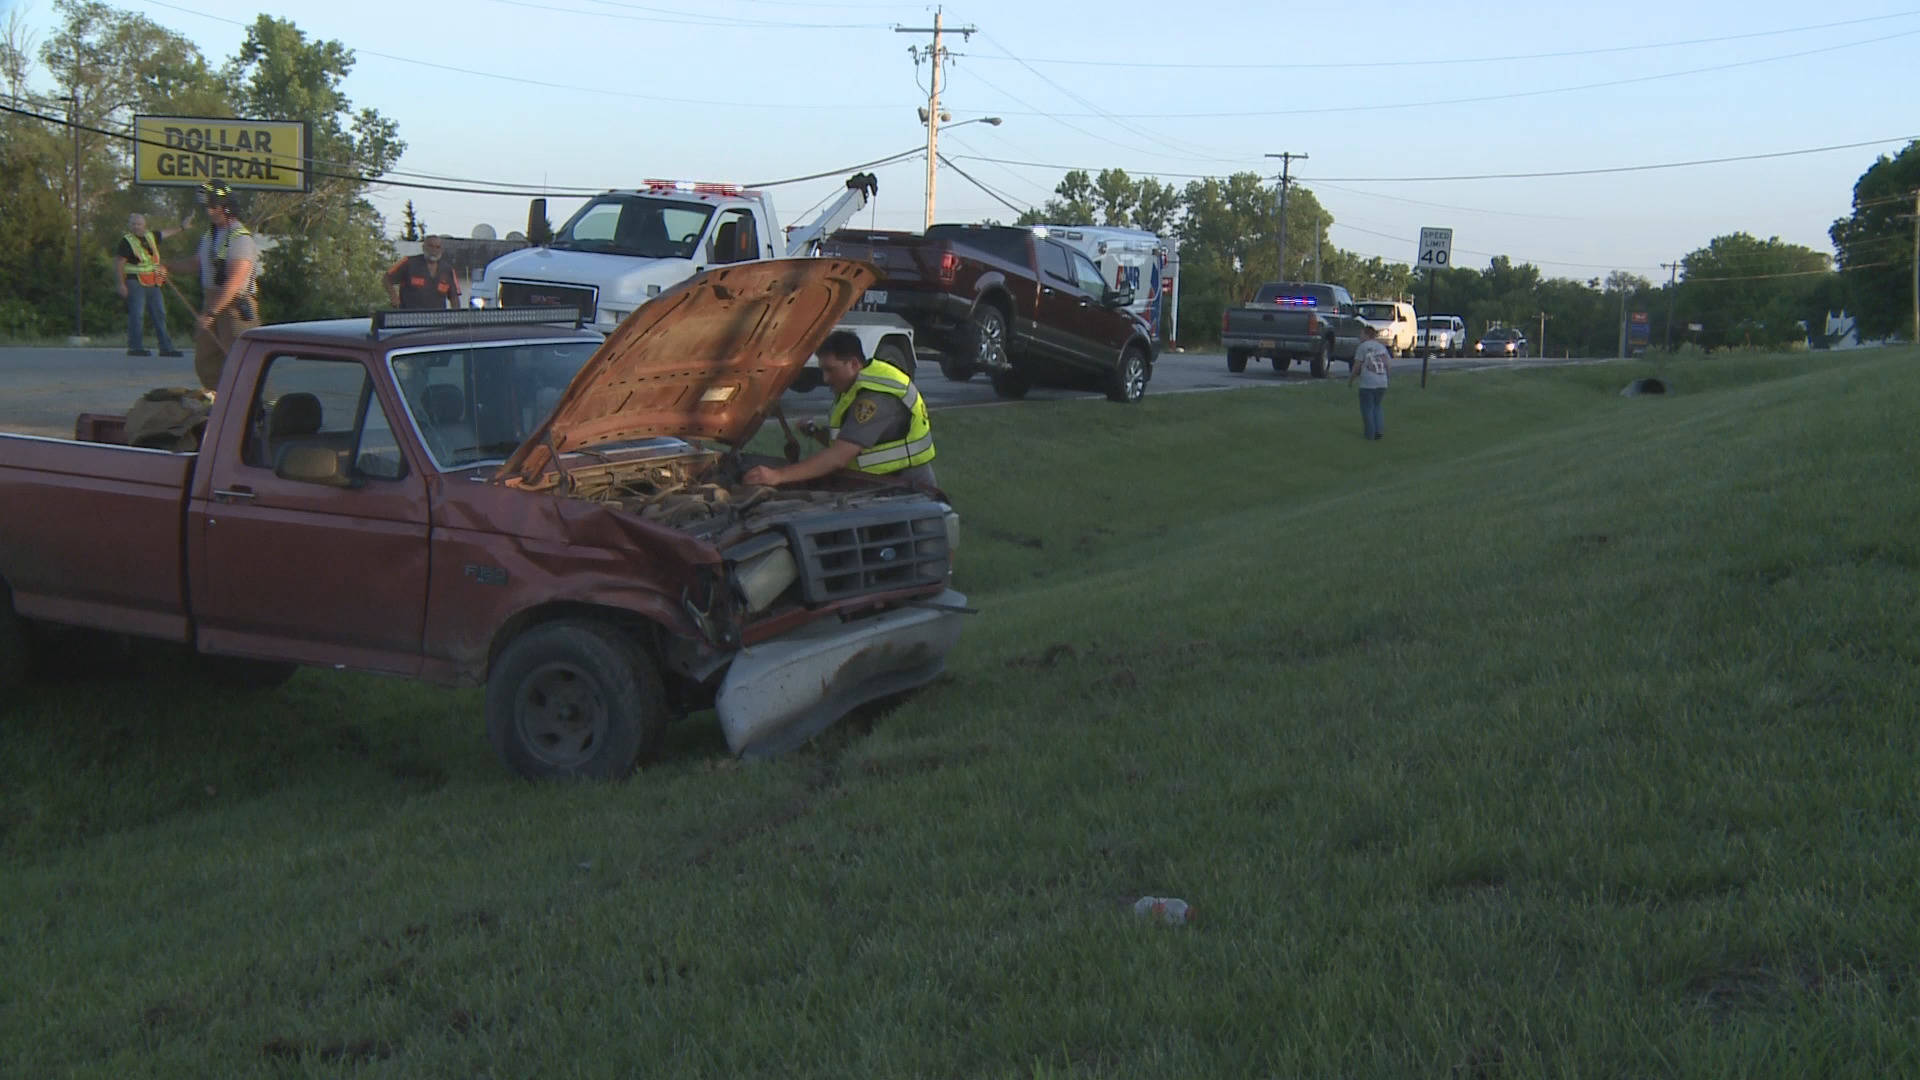 Two trucks crash on North Topeka Blvd